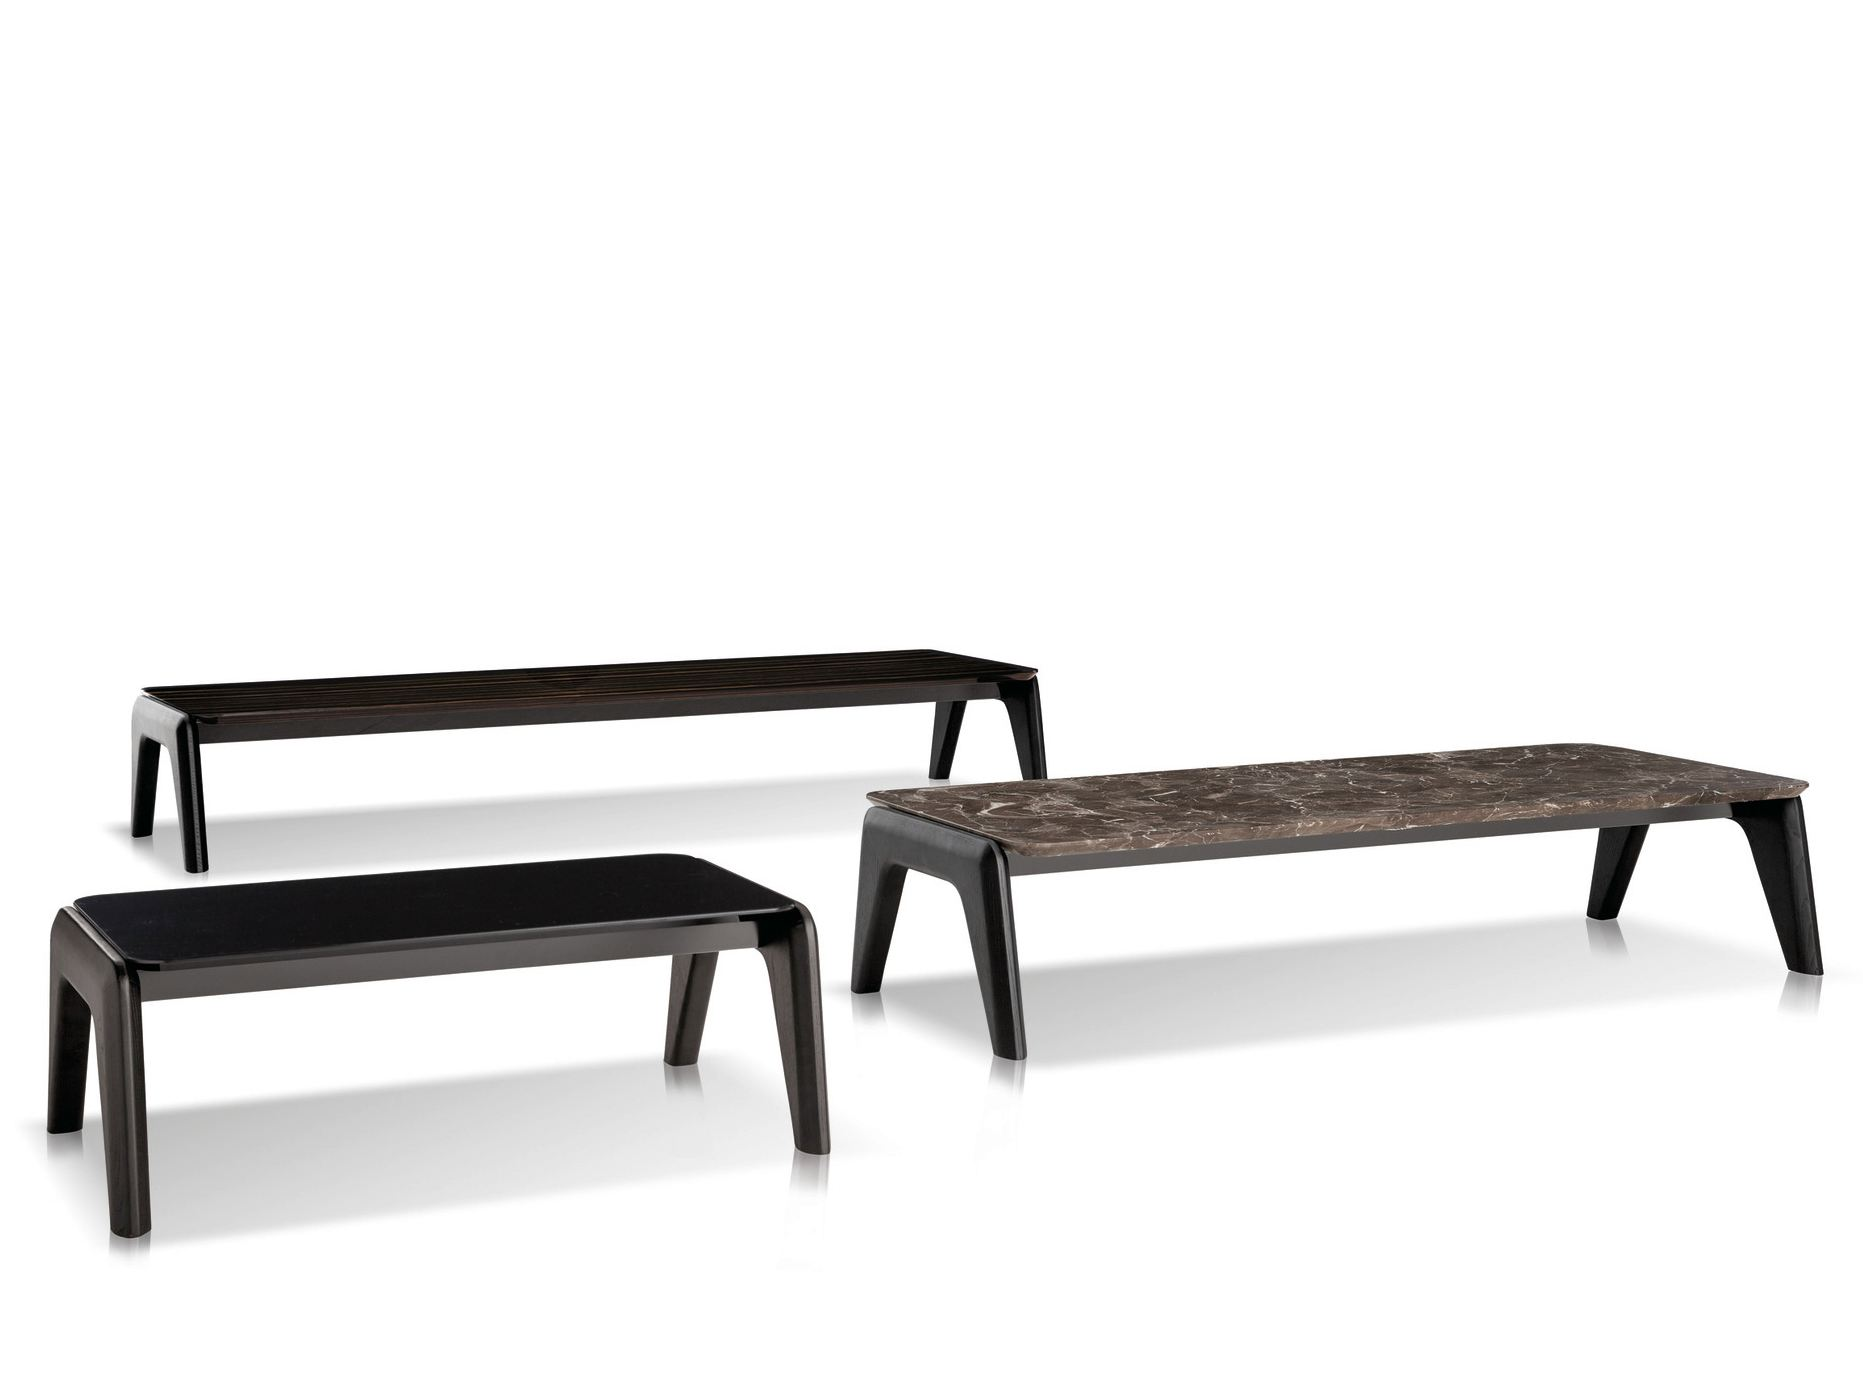 Low Rectangular Coffee Table Kirk Wood Kirk Collection By Minotti Design Rodolfo Dordoni